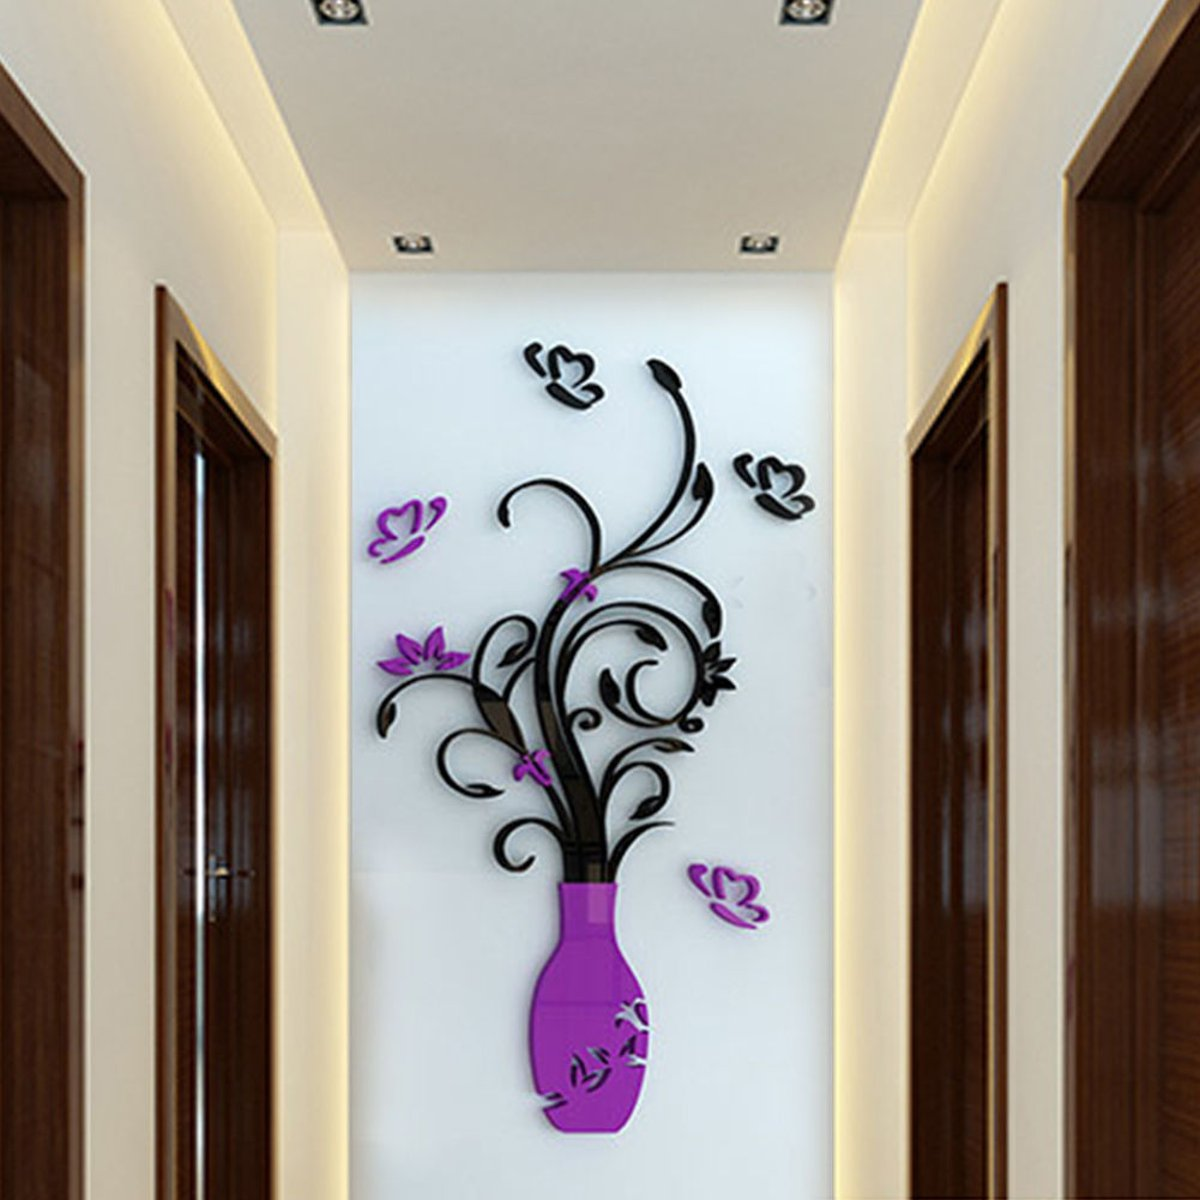 Acrylic 3D Flower Vase Wall Sticker Art Mural Decal Removable DIY ...